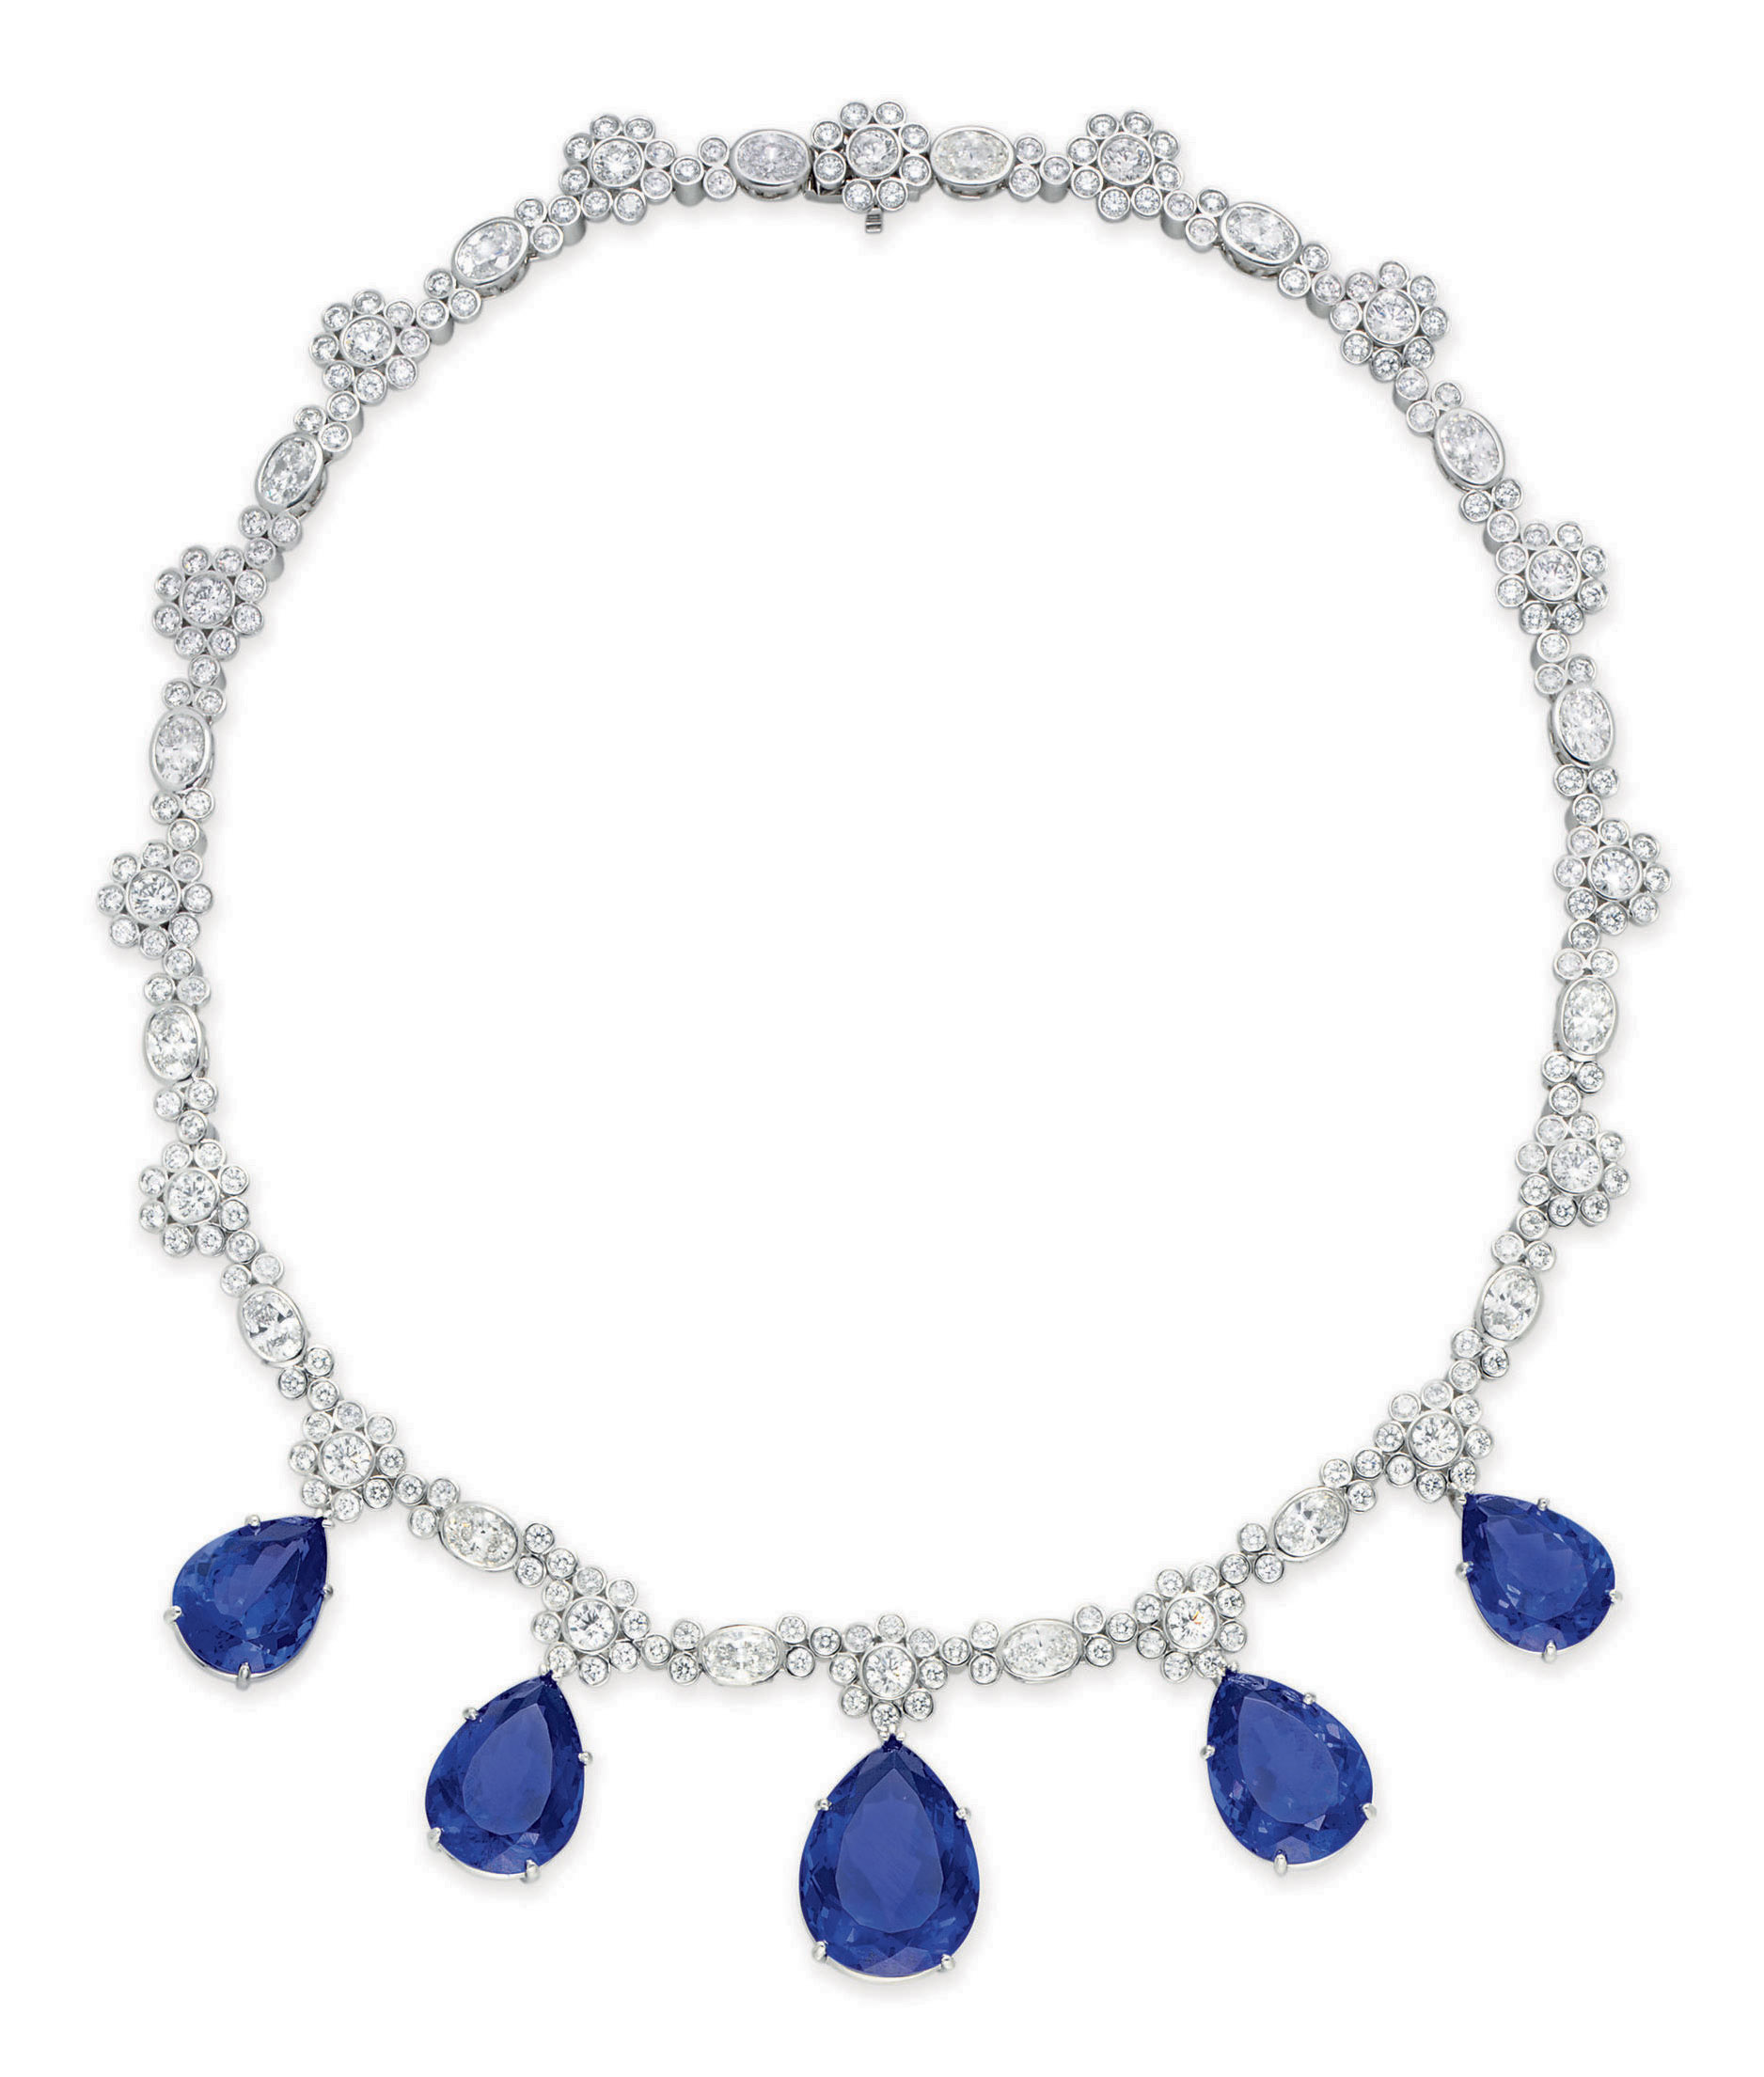 opulent stunning ashton product with david tanzanite pearls southsea pearl spaced img necklace beautiful